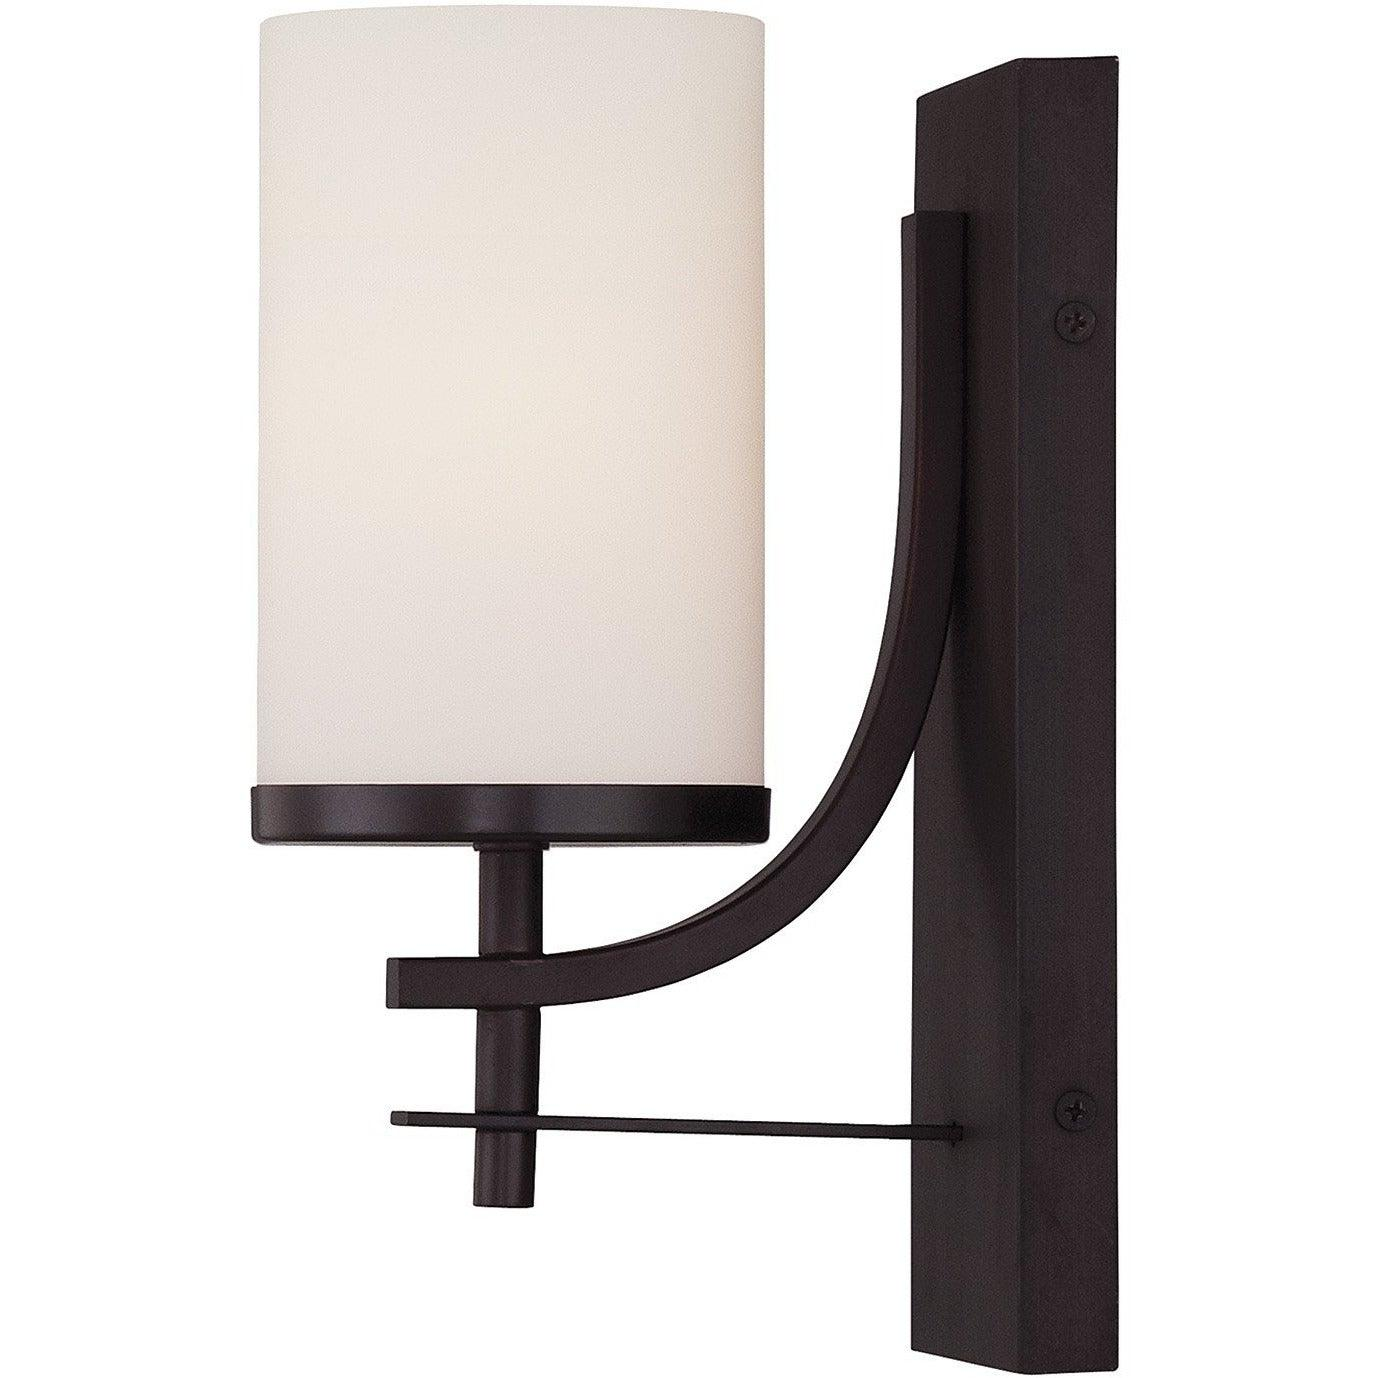 Savoy House - 9-337-1-13 - One Light Wall Sconce - Colton - English Bronze